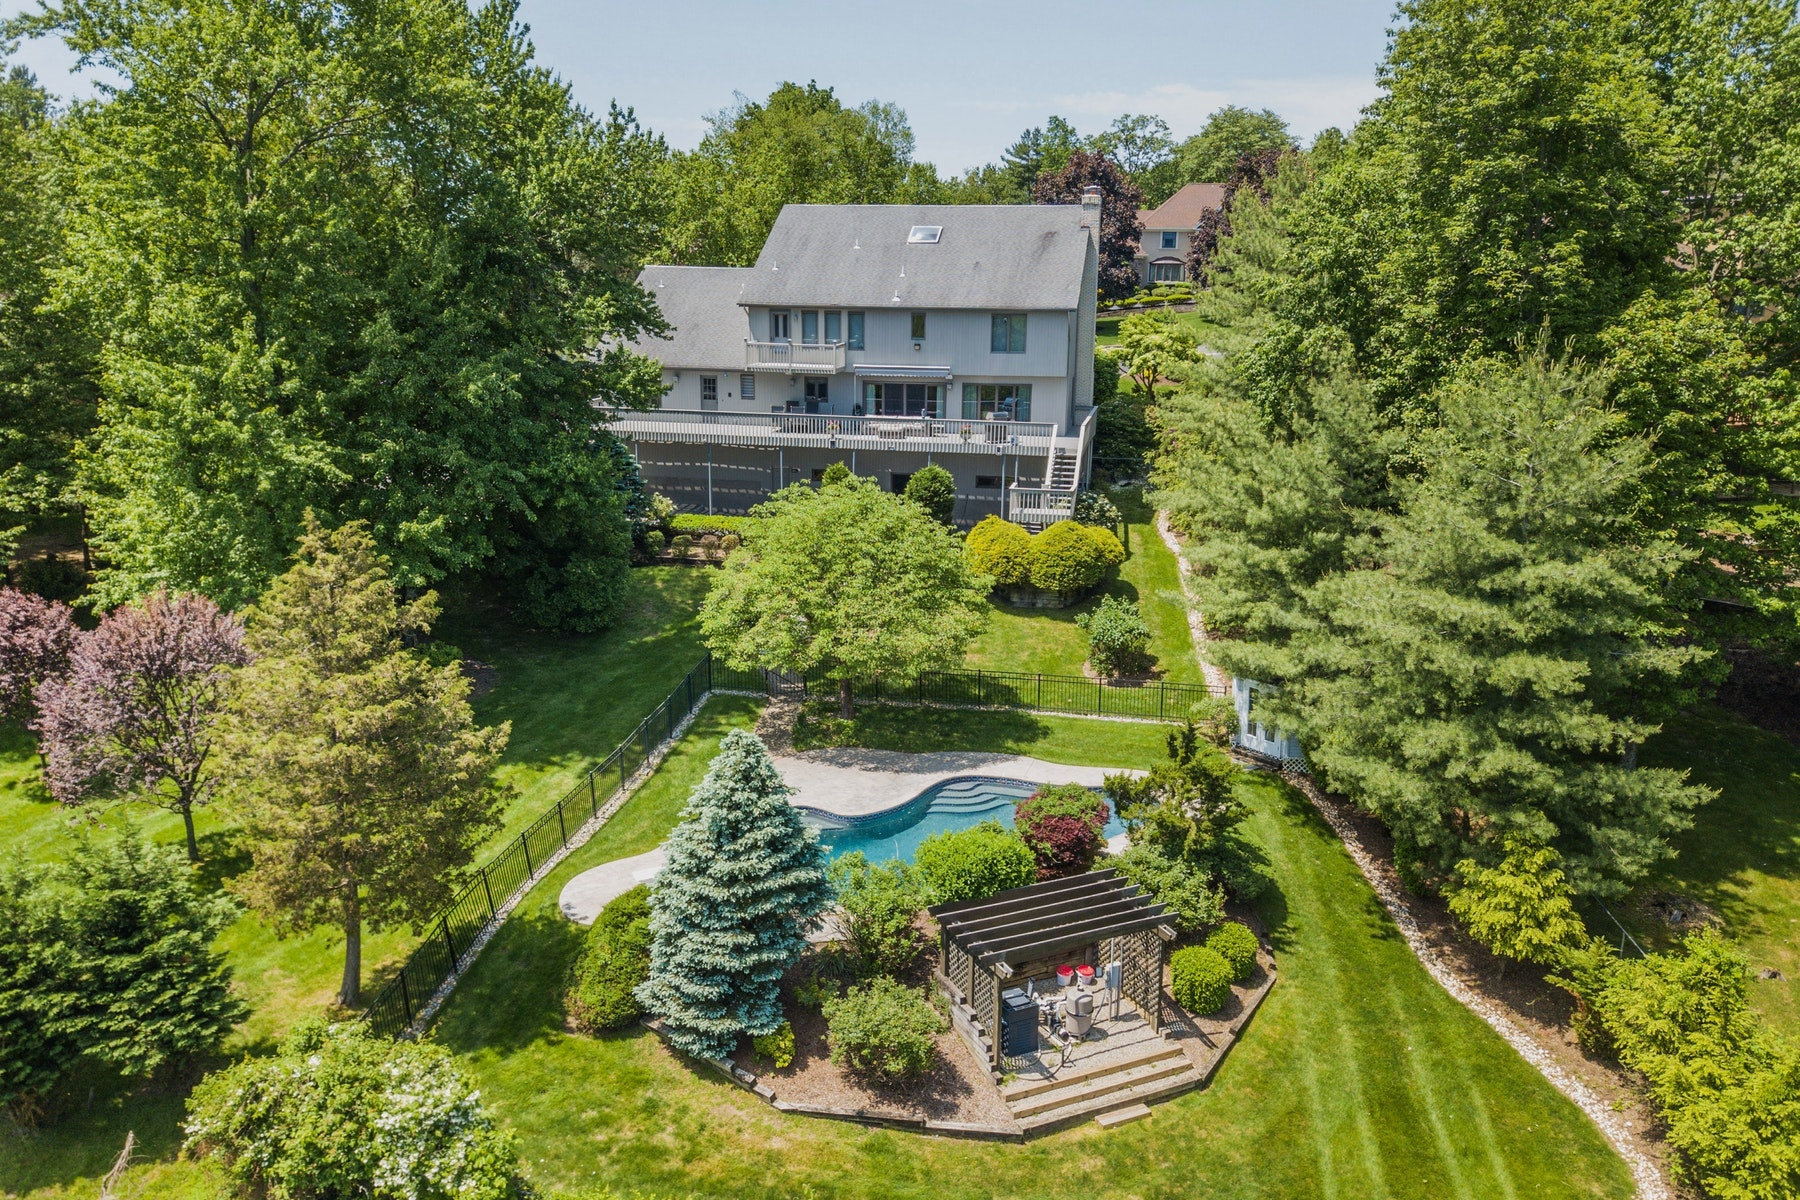 Single Family Homes for Sale at 72 Windsor Drive Montville, New Jersey 07045 United States